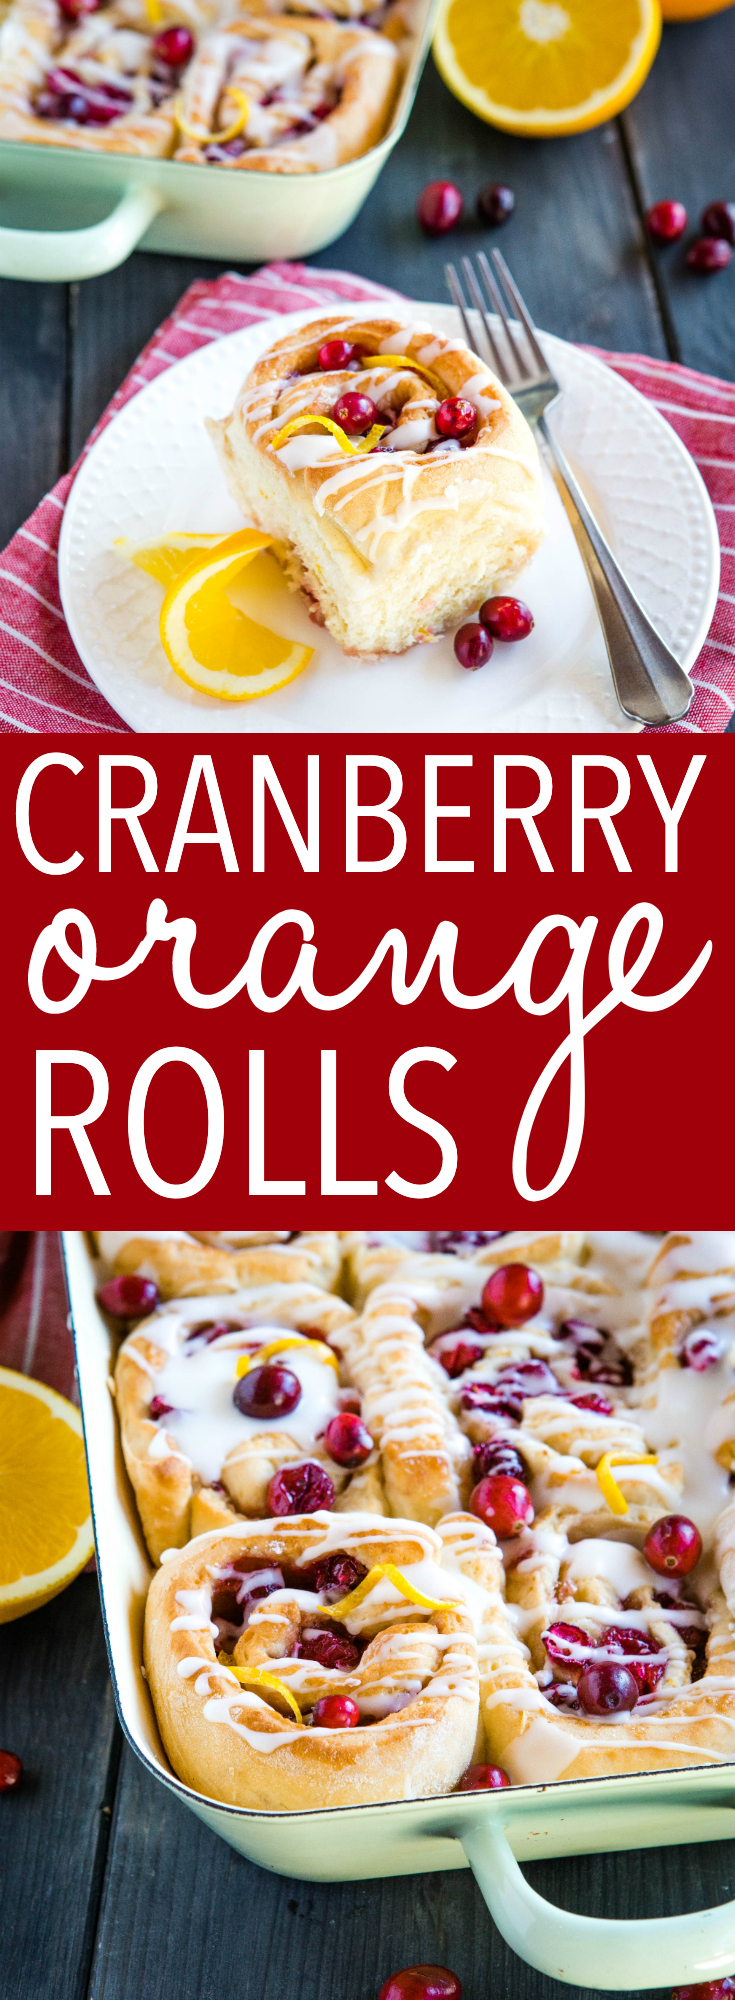 These Cranberry Orange Sweet Rolls are made with a simple sweet dough, fresh oranges and cranberries & an easy orange glaze! Perfect for holiday brunch! via @busybakerblog